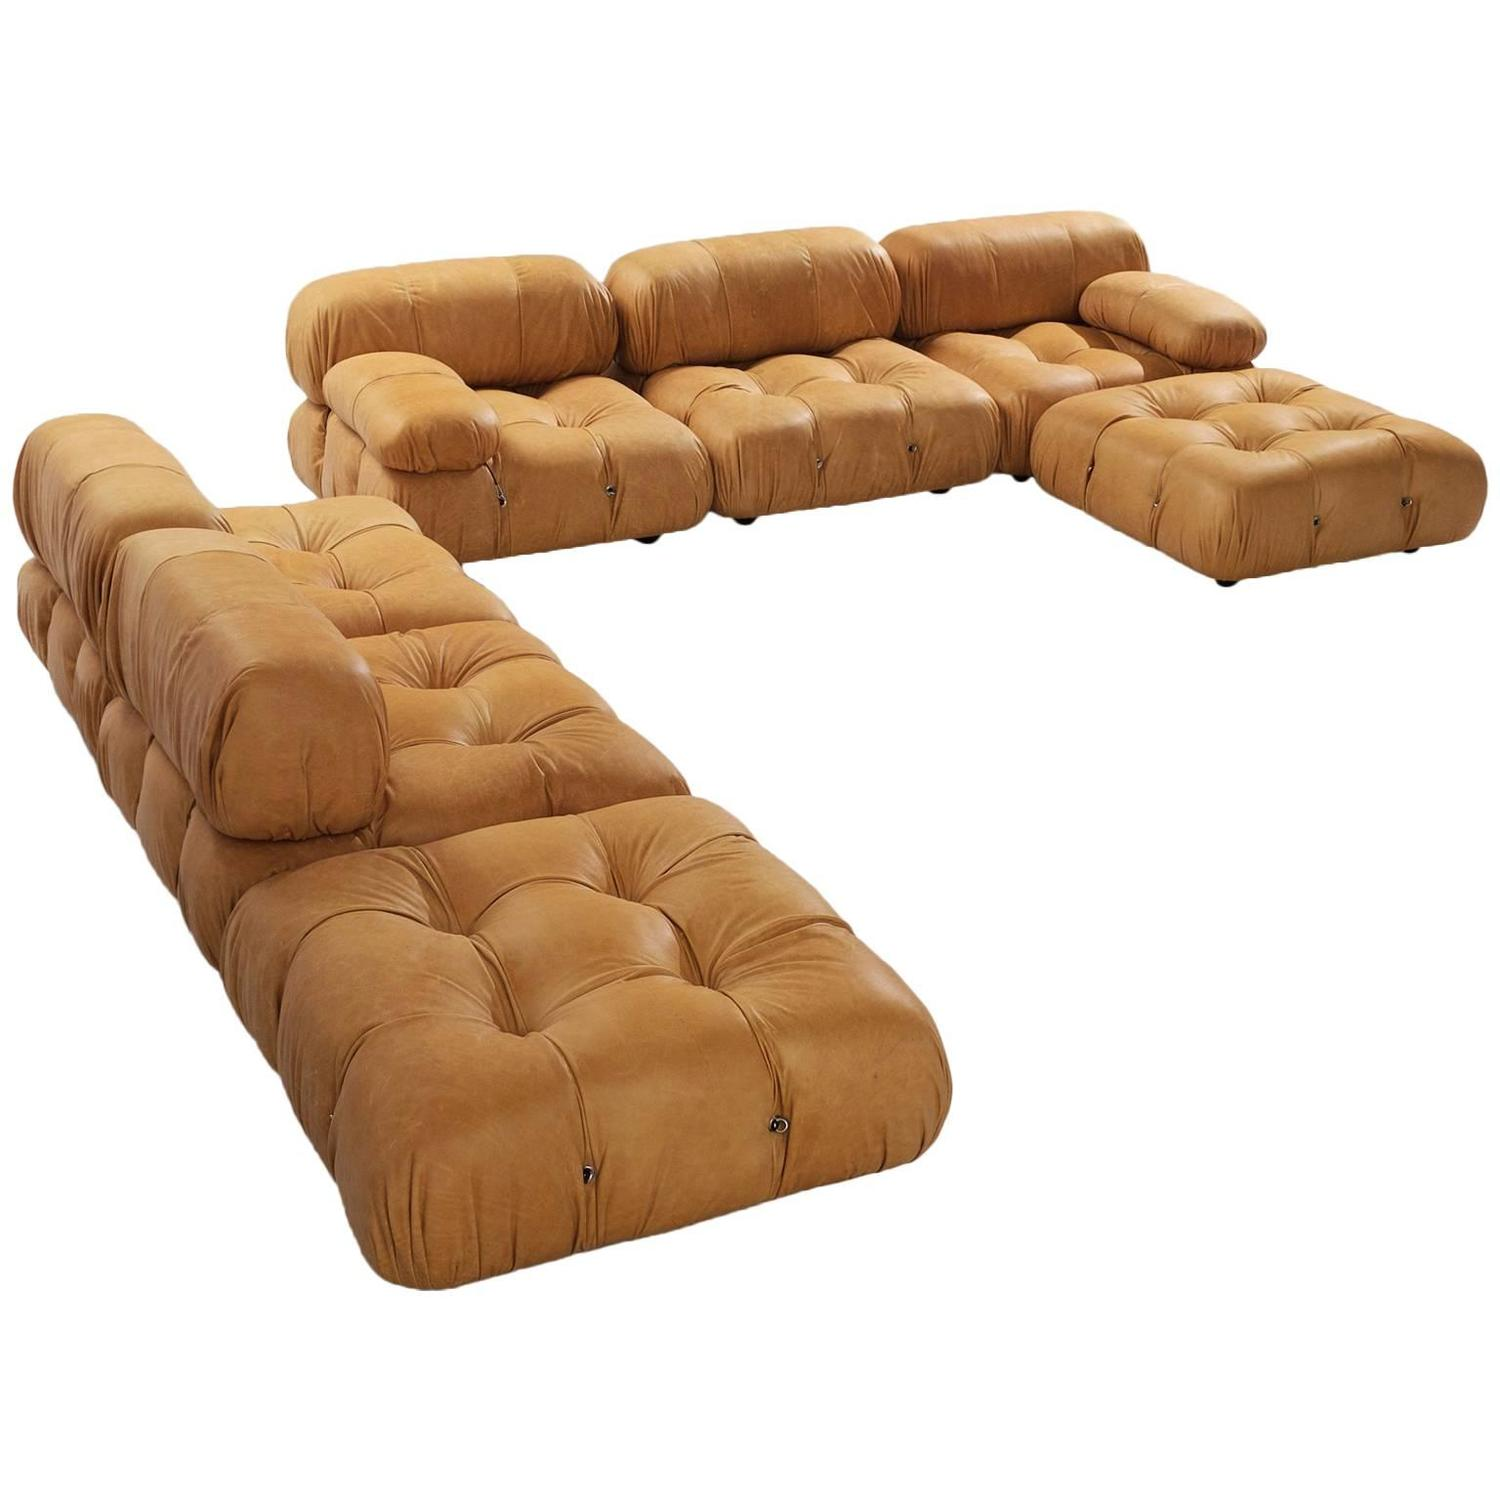 large sectional 39 camaleonda 39 sofa in cognac leather by. Black Bedroom Furniture Sets. Home Design Ideas